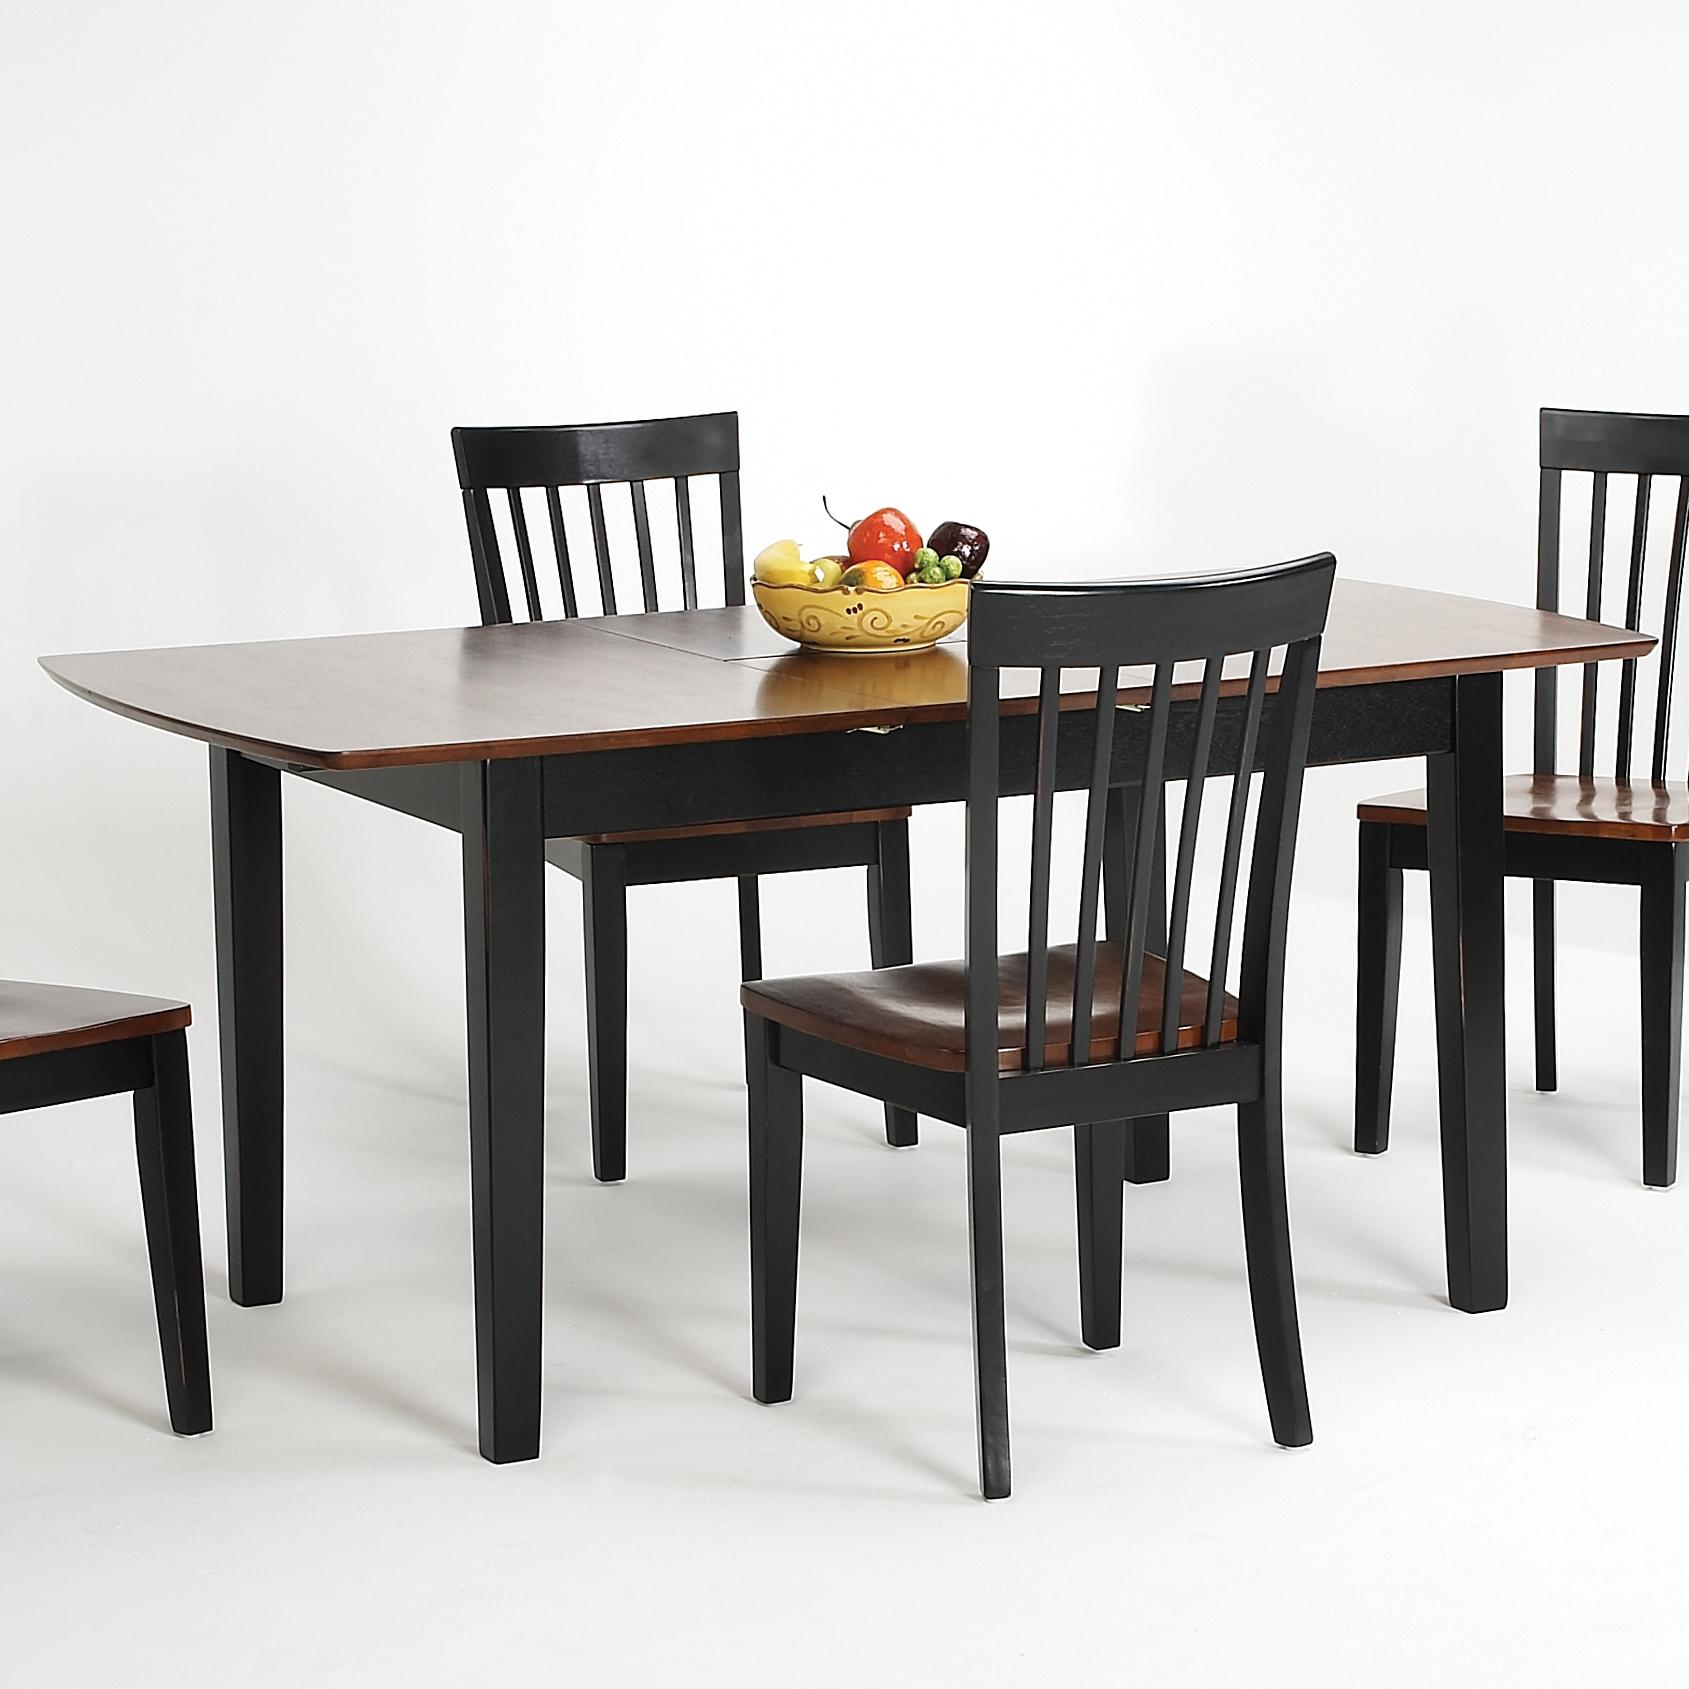 Newbury and Kensington Contemporary Dining Sets Dining Table by Amesbury Chair at Dinette Depot